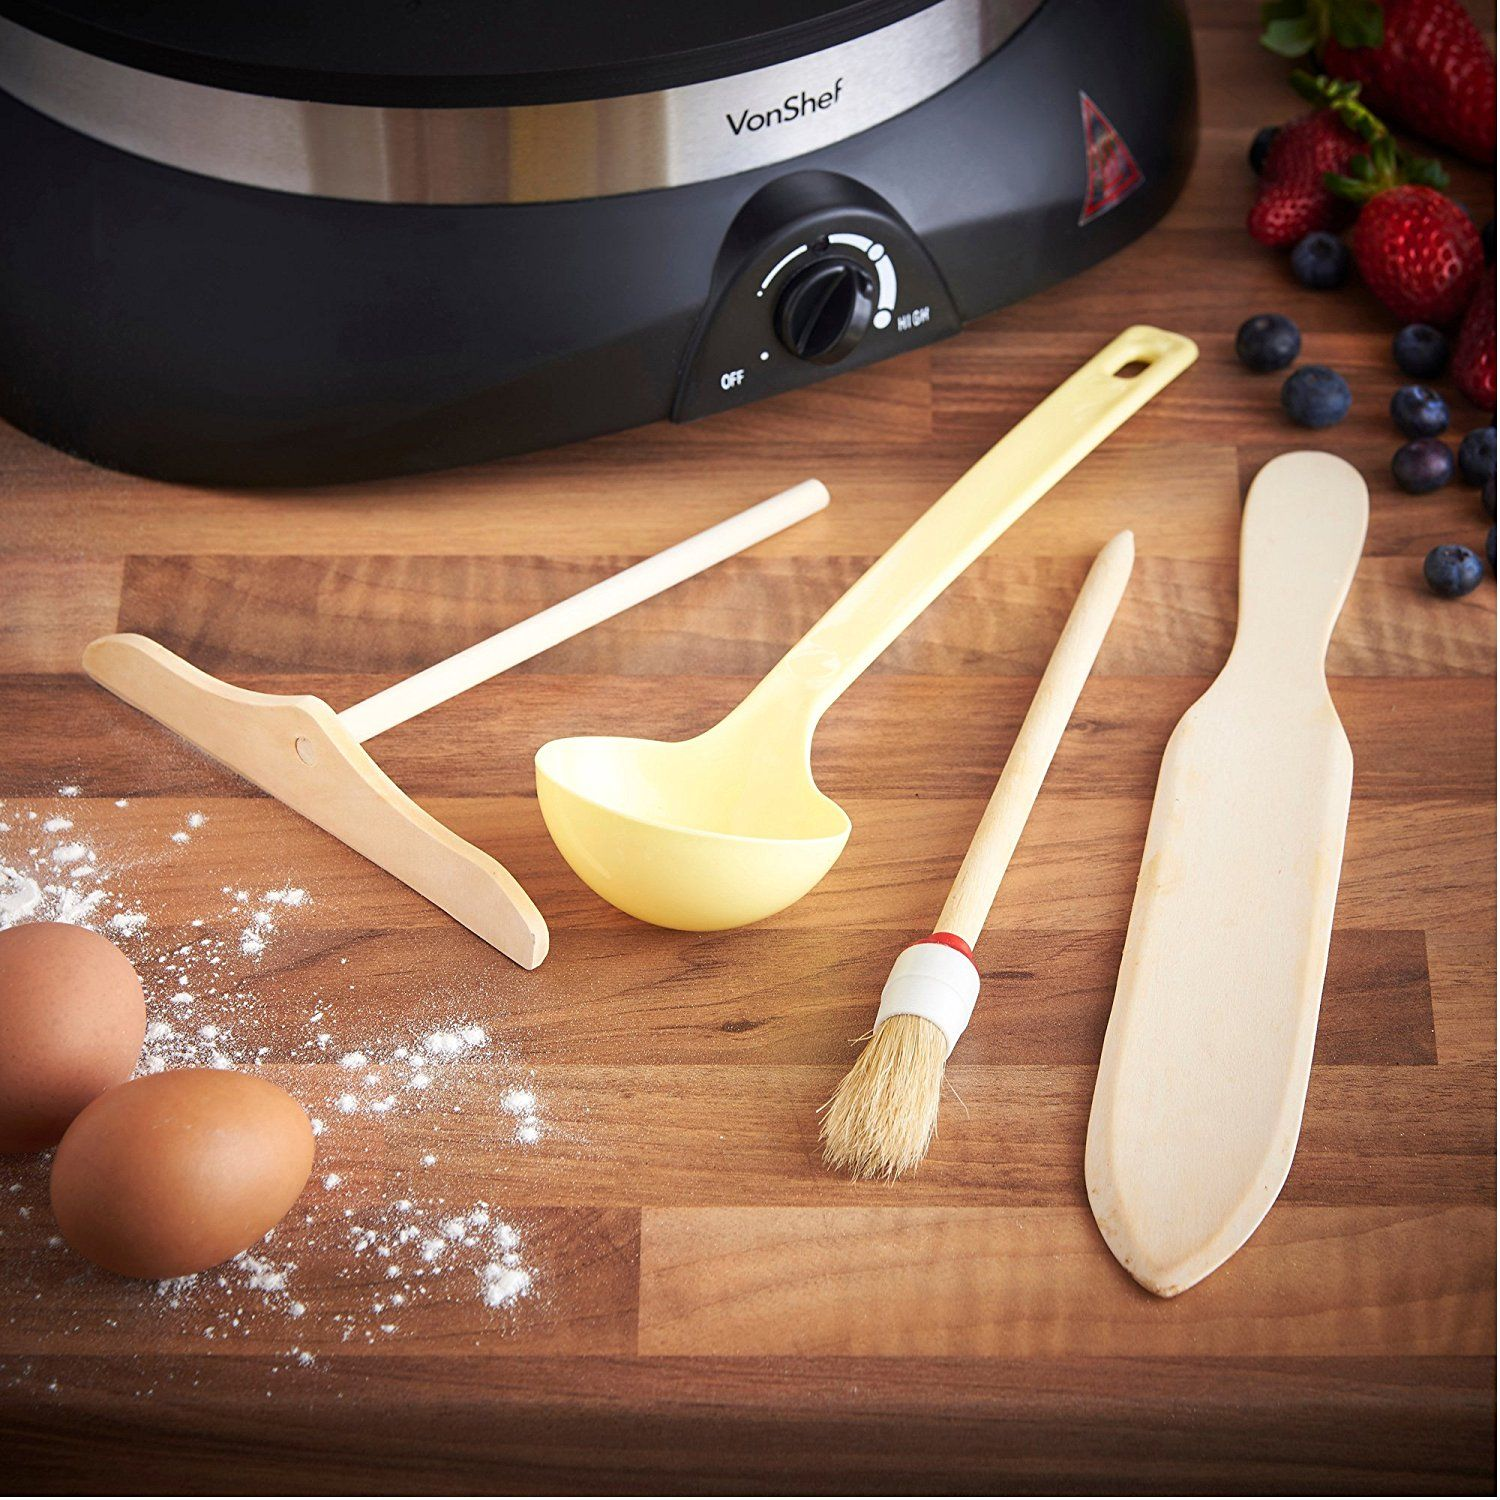 VonShef Professional High Quality Electric Crepe and Pancake Maker, Free 2 Year Warranty + Free Batter Spreader, Oil Brush, Wooden Spatula & Ladle: Amazon.co.uk: Kitchen & Home